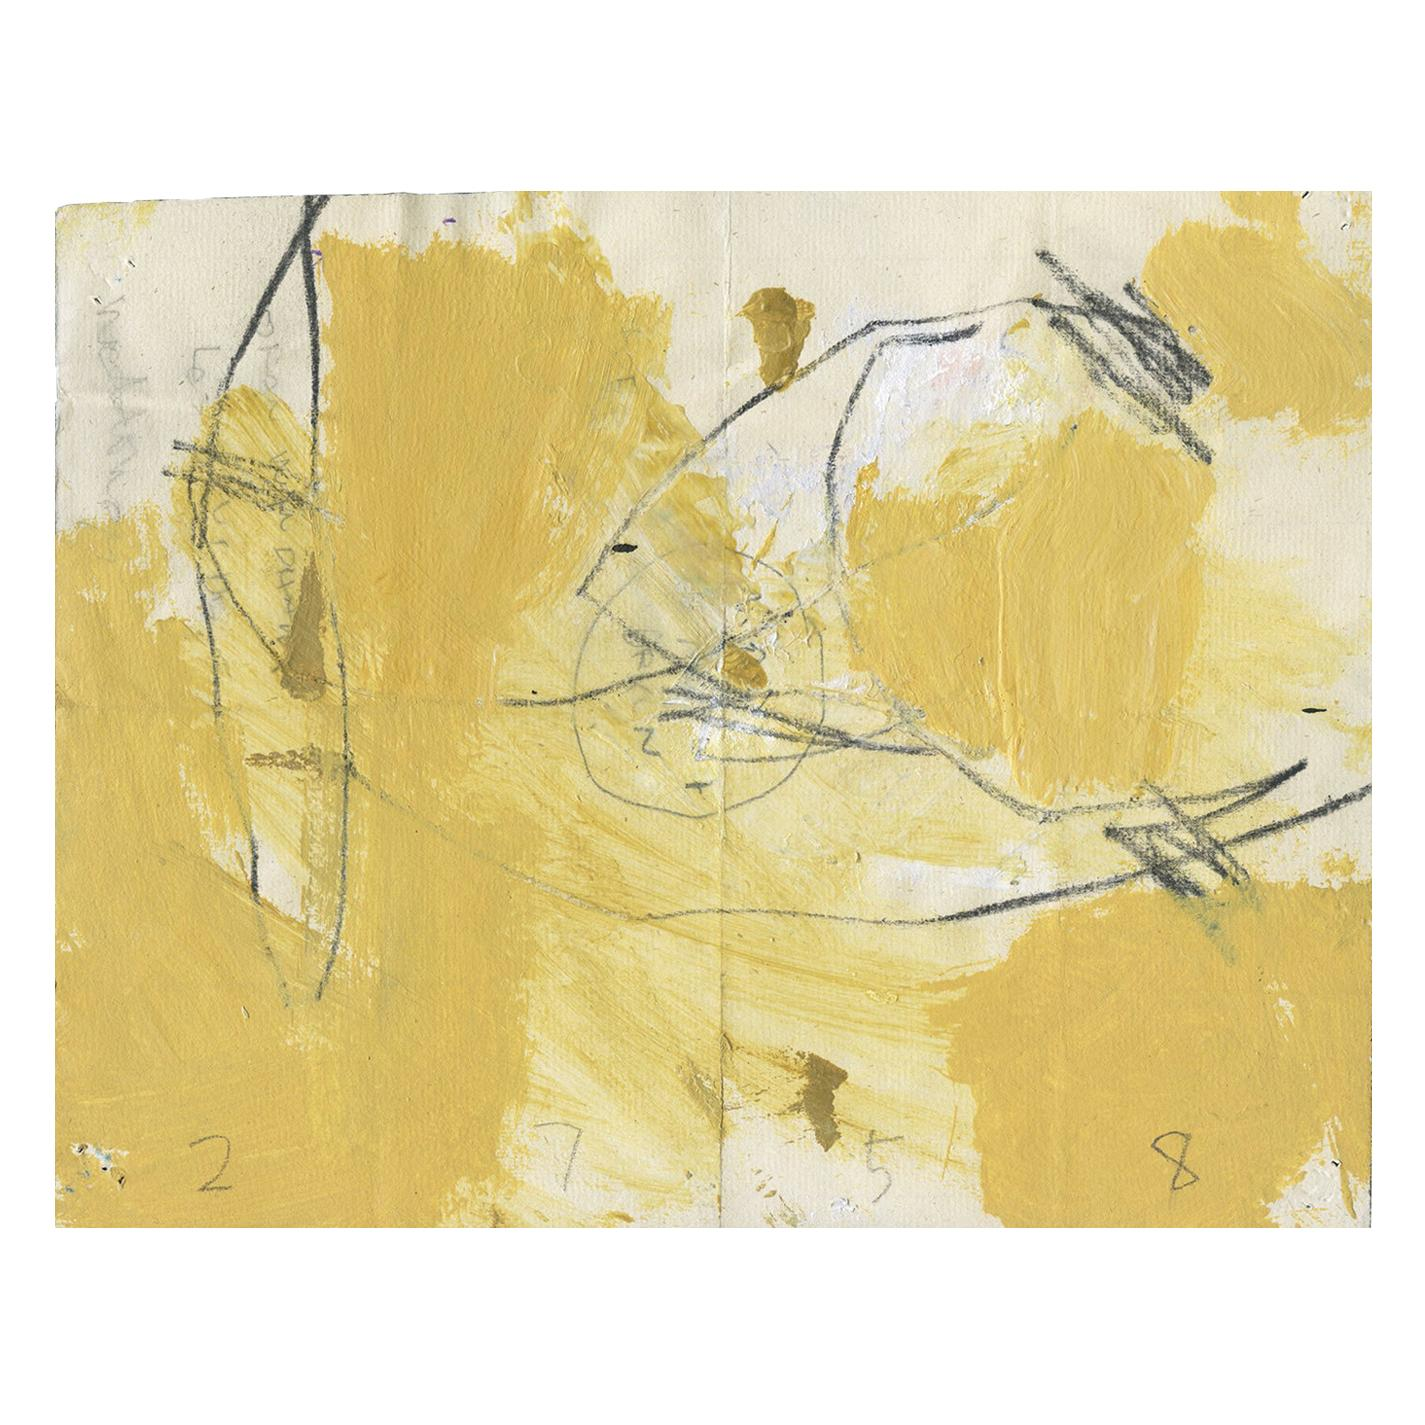 """""""WD2758 Mona"""" Abstract Art by M. P. Landis, Warehouse Drawing Series"""